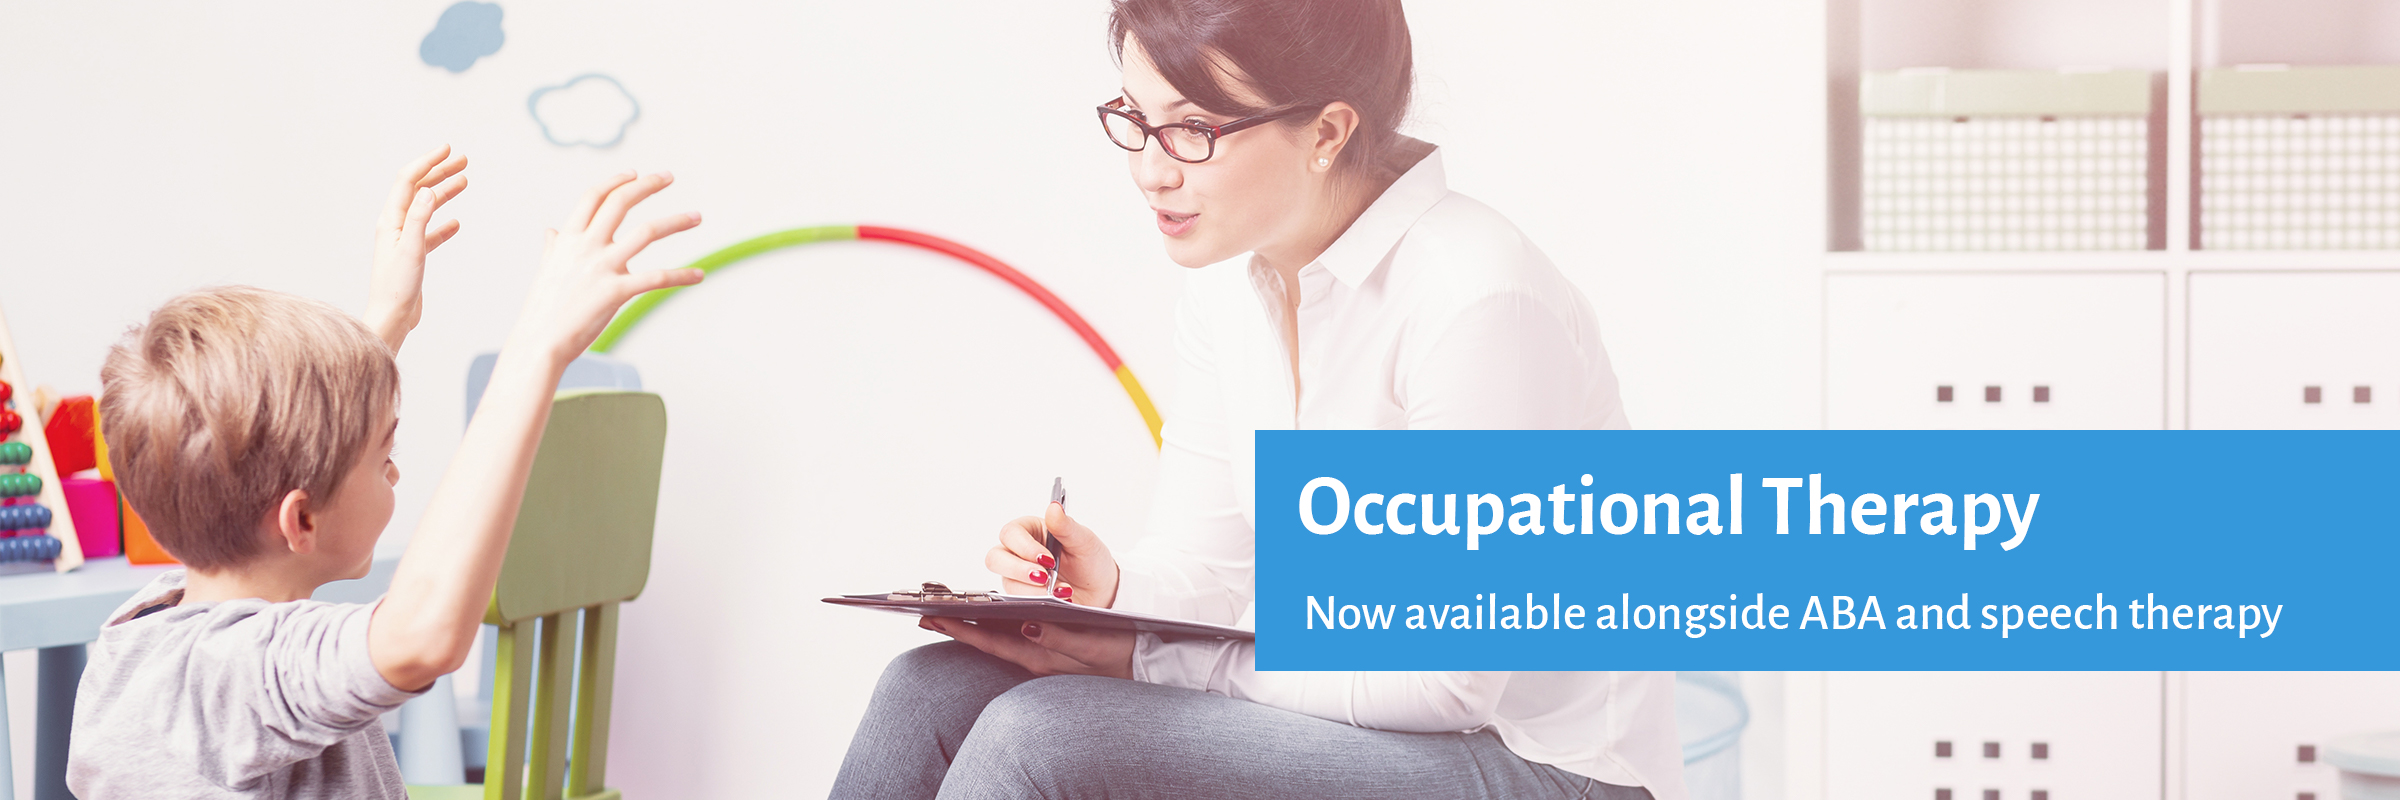 Occupational Therapy now available